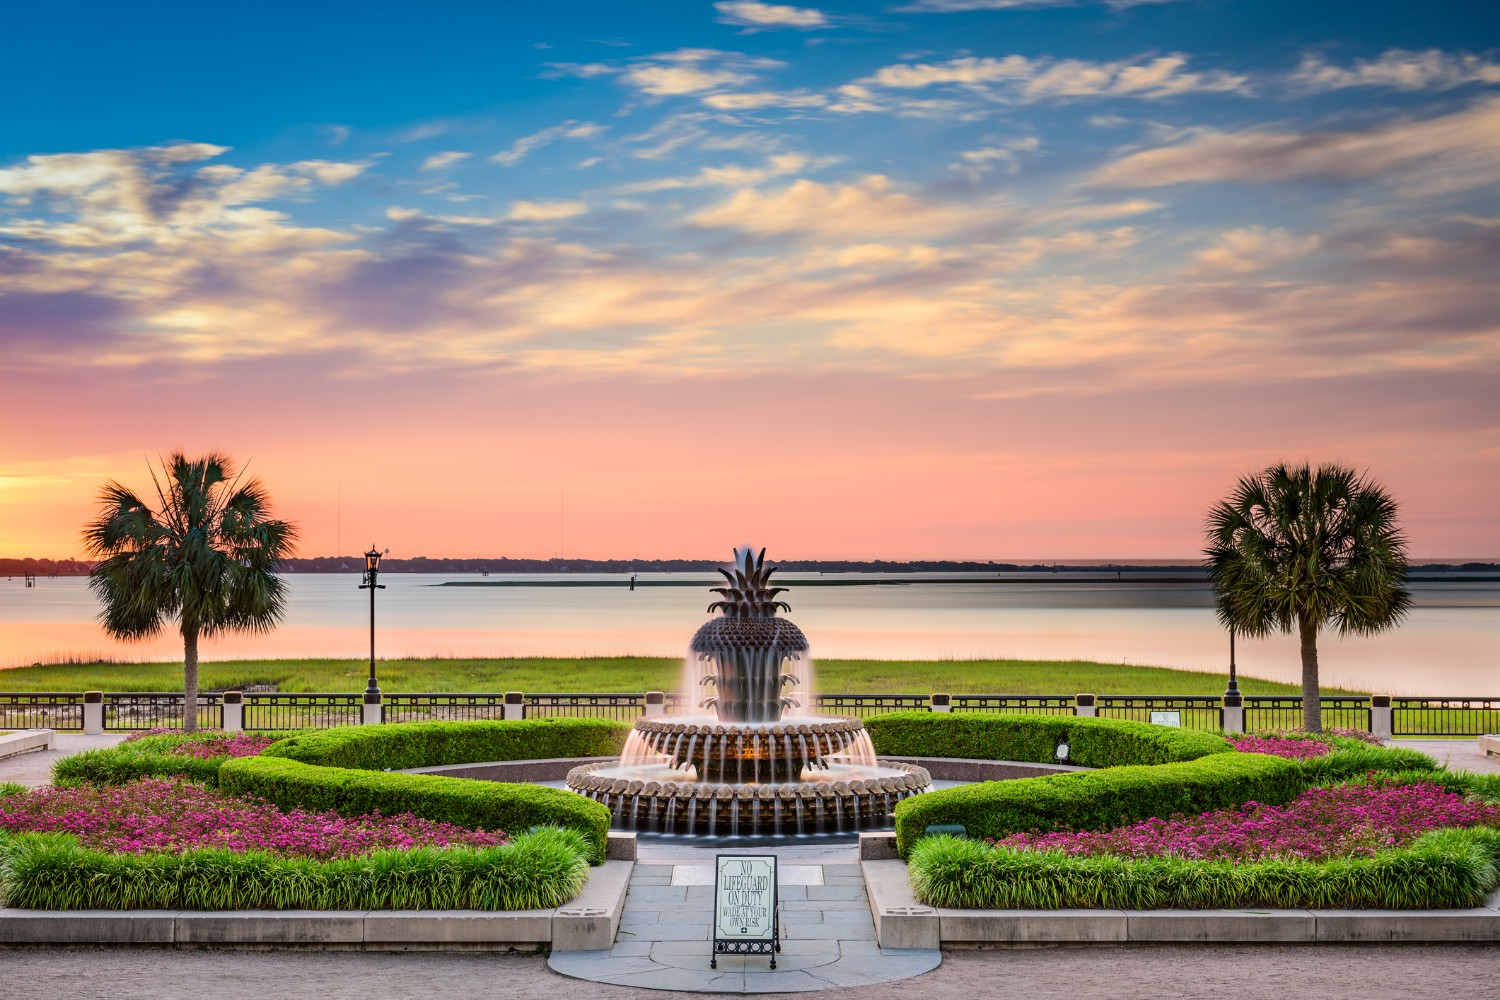 waterfront park is one of the best things to do in charleston SC for free